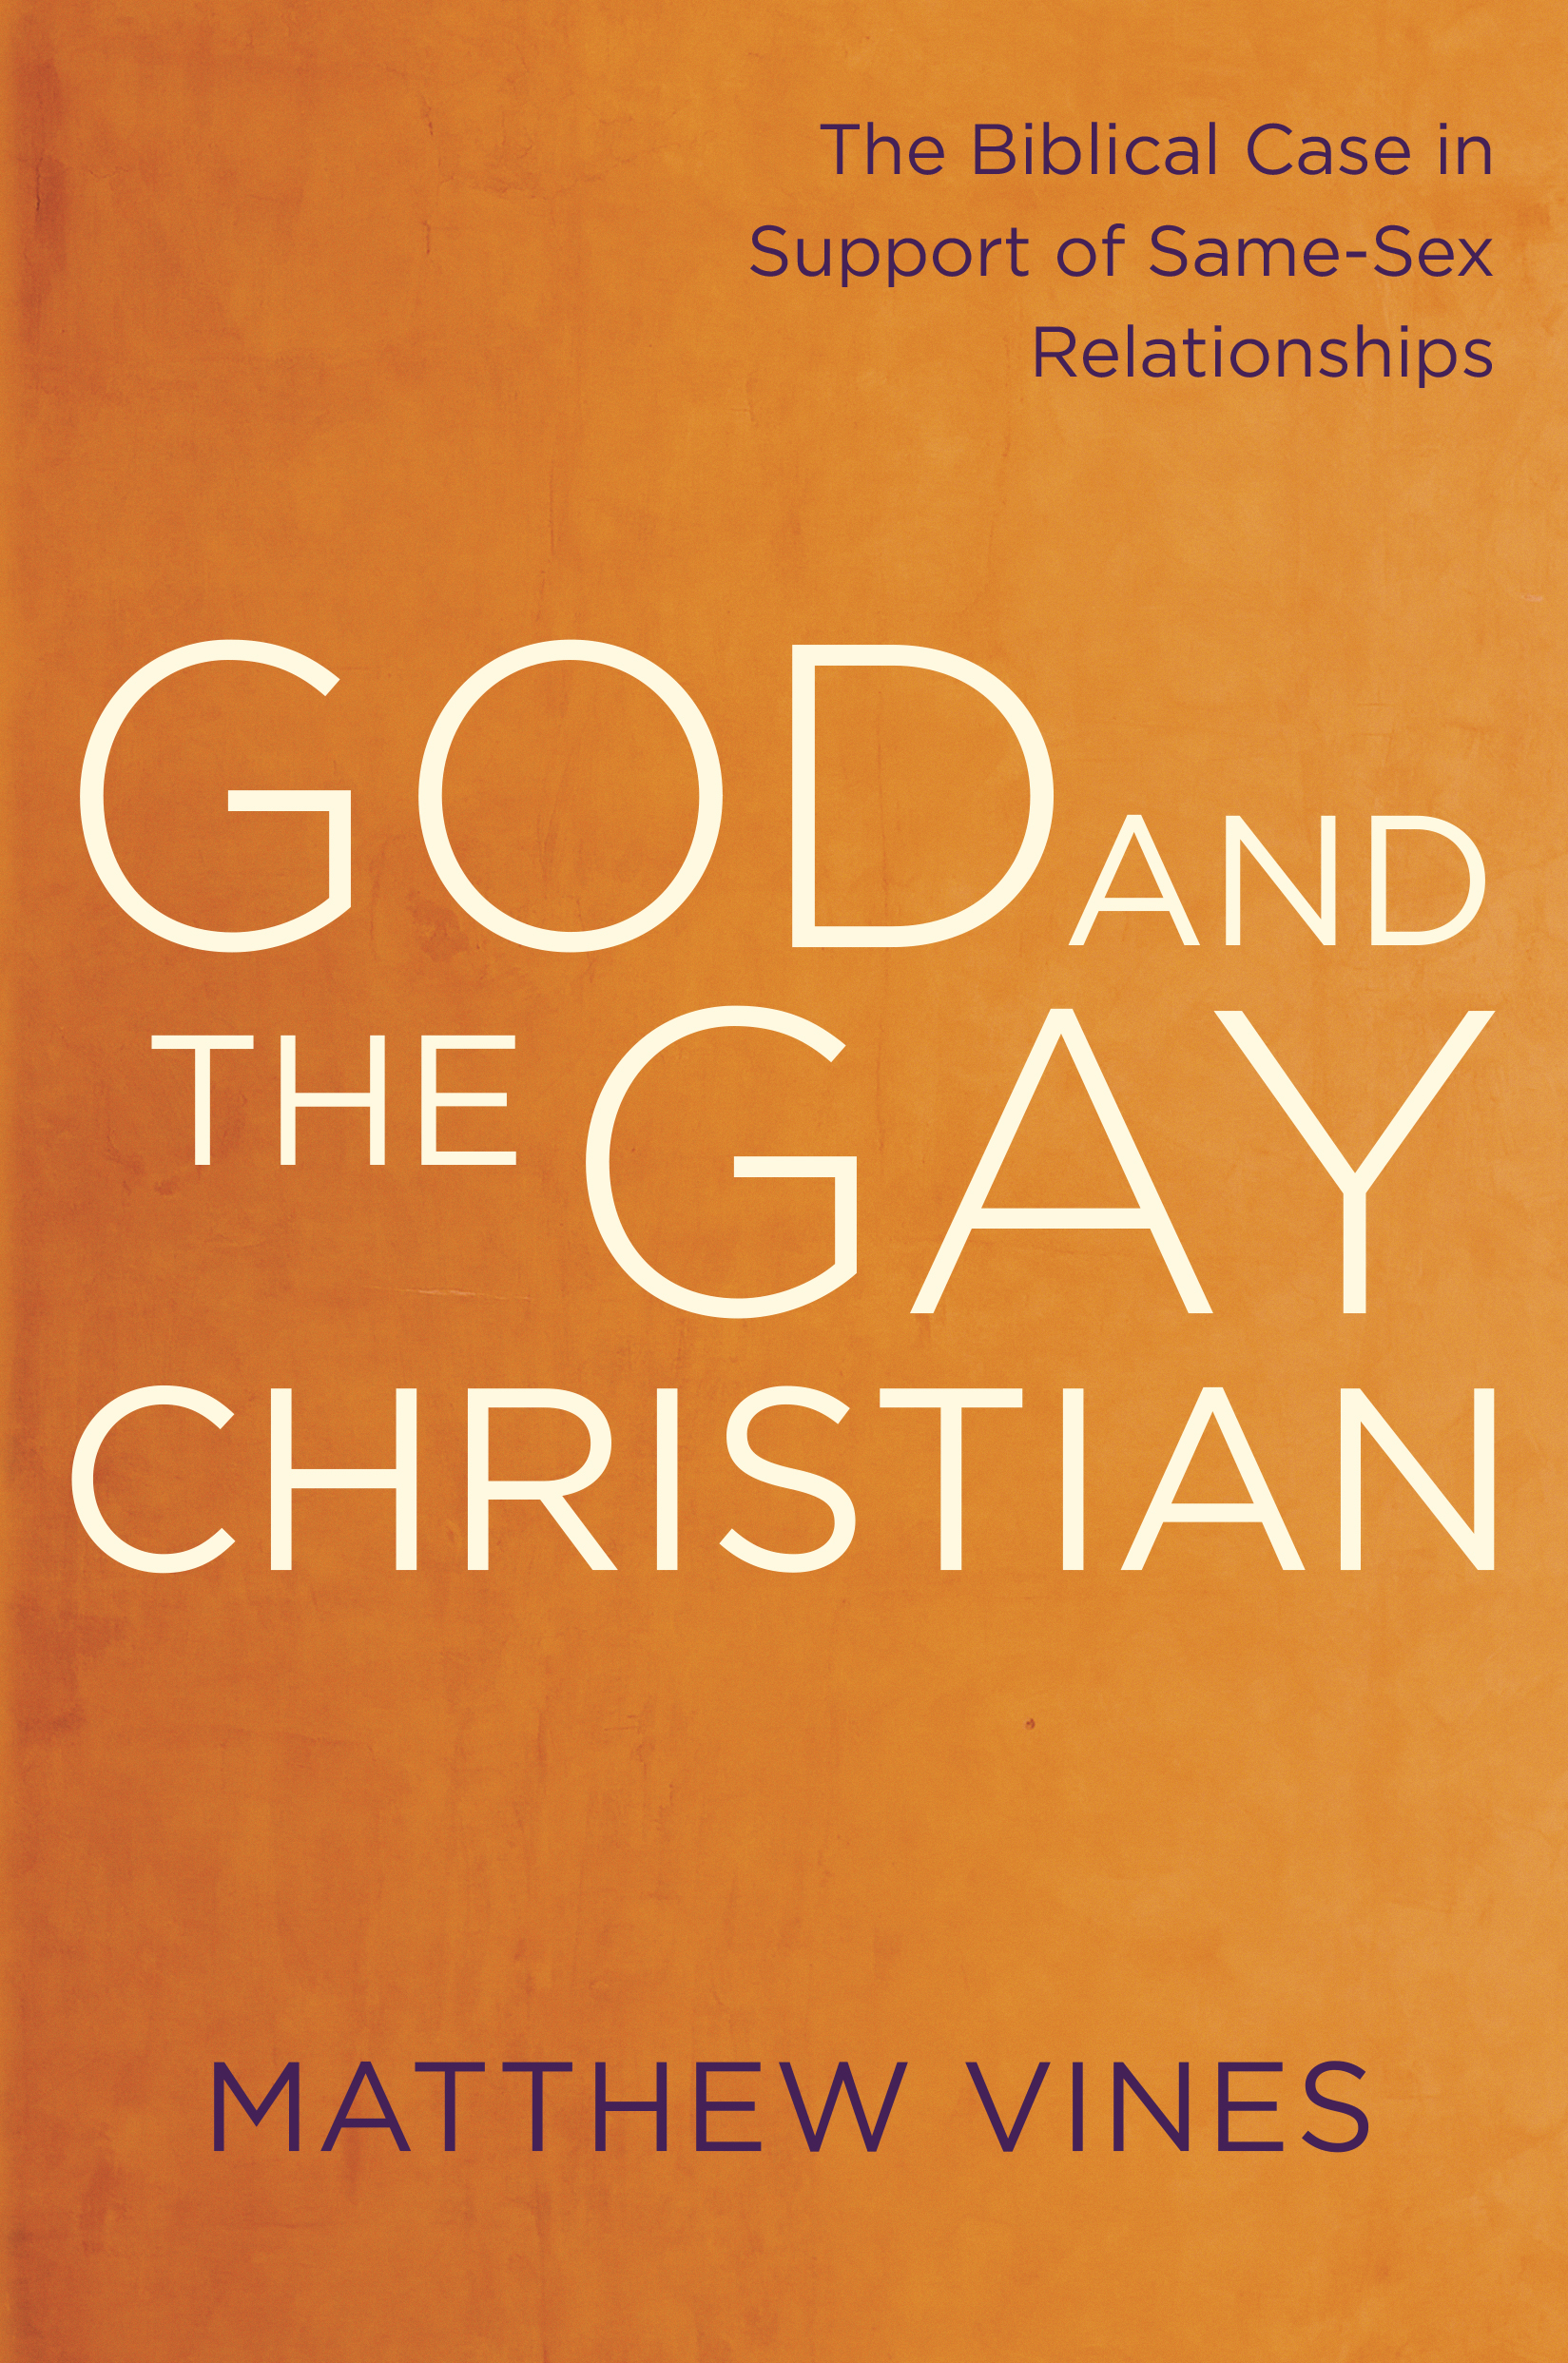 'God and the Gay Christian,' by Matthew Vines